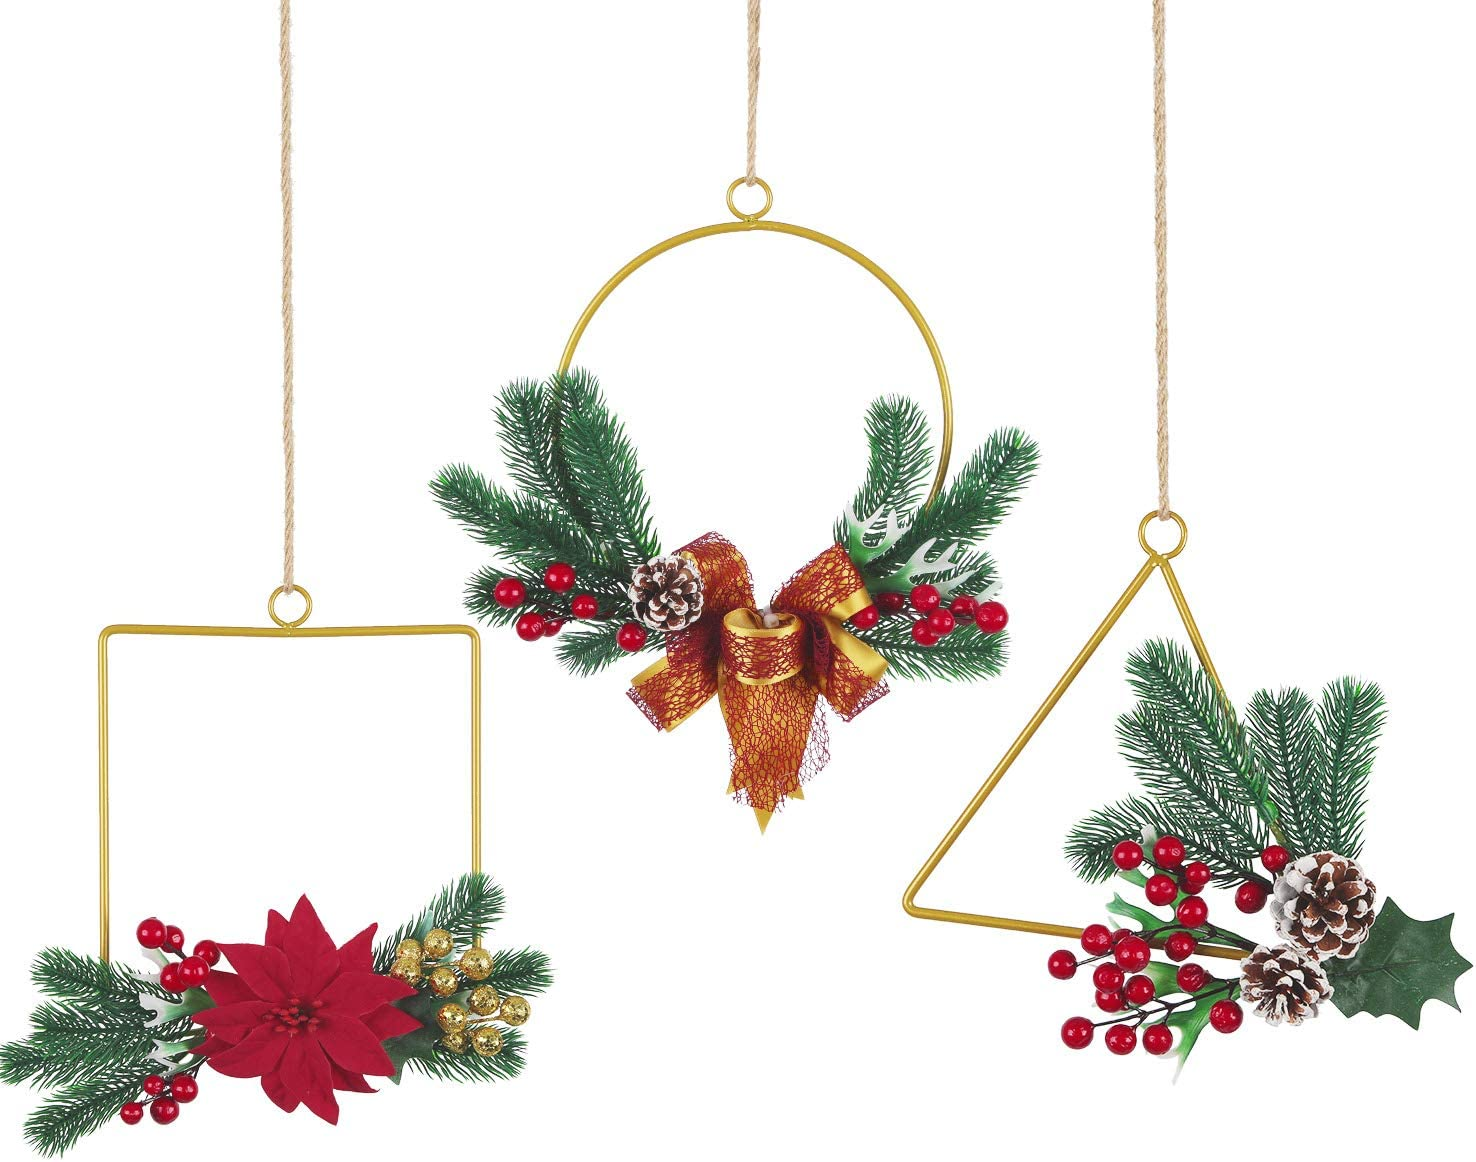 Pauwer Christmas Metal Hoop Wreath Set of 3 Artificial Floral Hoop Wreath with Red Berries Poinsettia Flowers Pine Cones Wall Hoop Garland for Christmas Home Wall Window Decoration